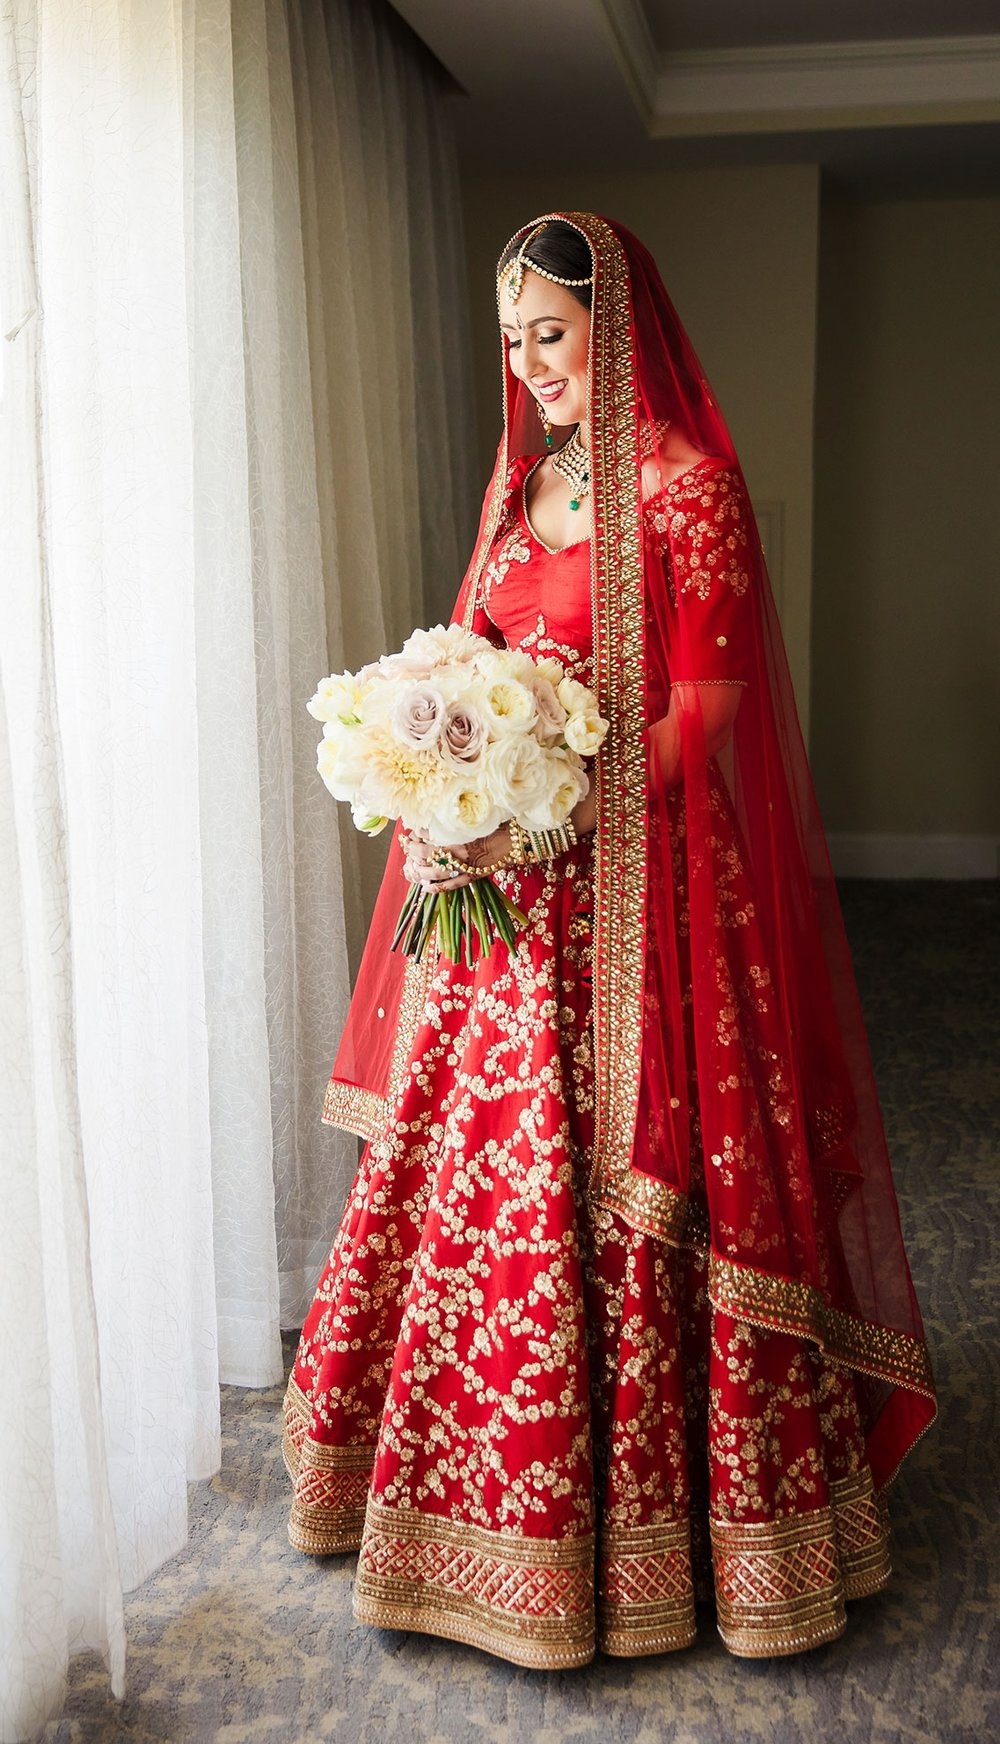 02-ritz-carlton-laguna-niguel-indian-wedding-photography-1.jpg